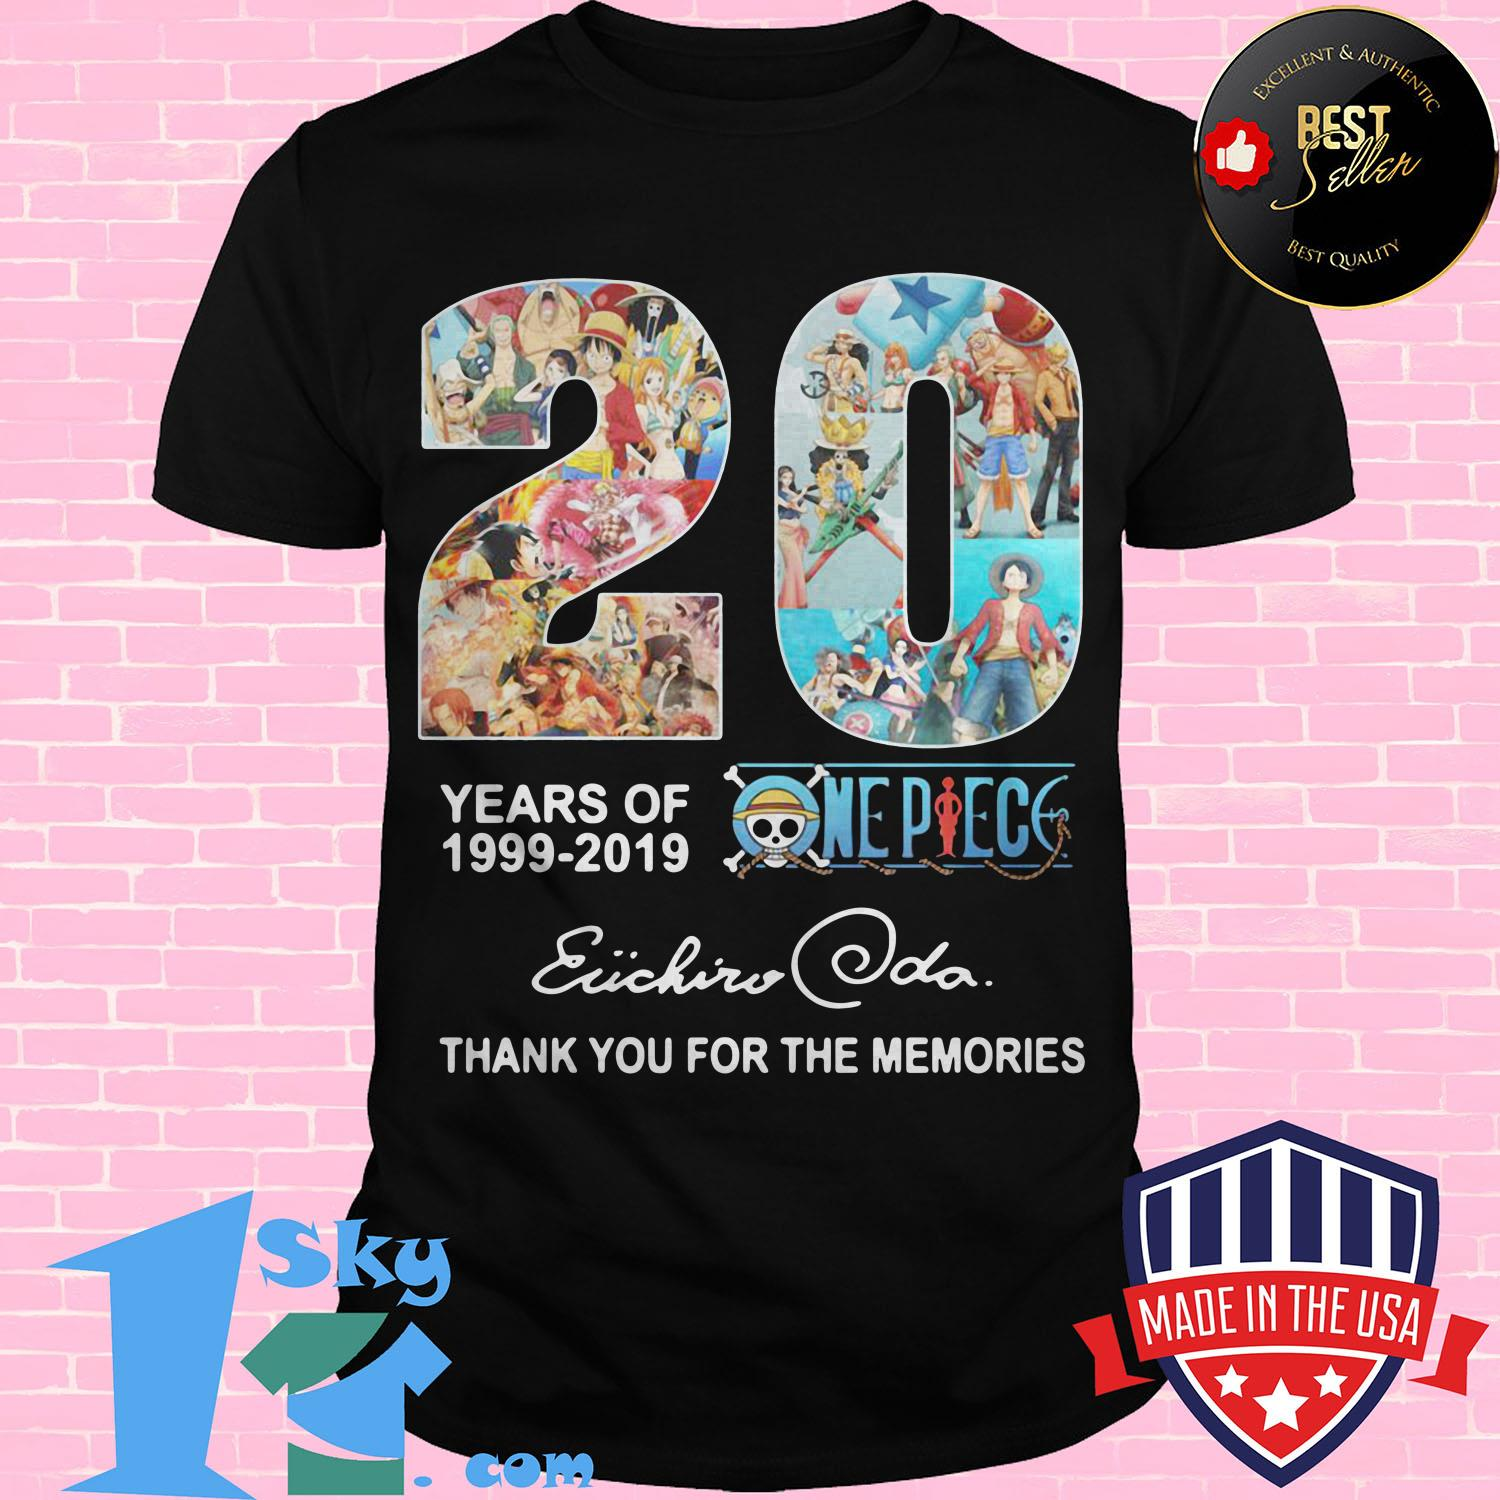 20 year of one piece anime anniversary 1999 2019 eiichiro oda ladies tee - 20 year of One Piece Anime anniversary 1999 2019 Eiichiro Oda shirt